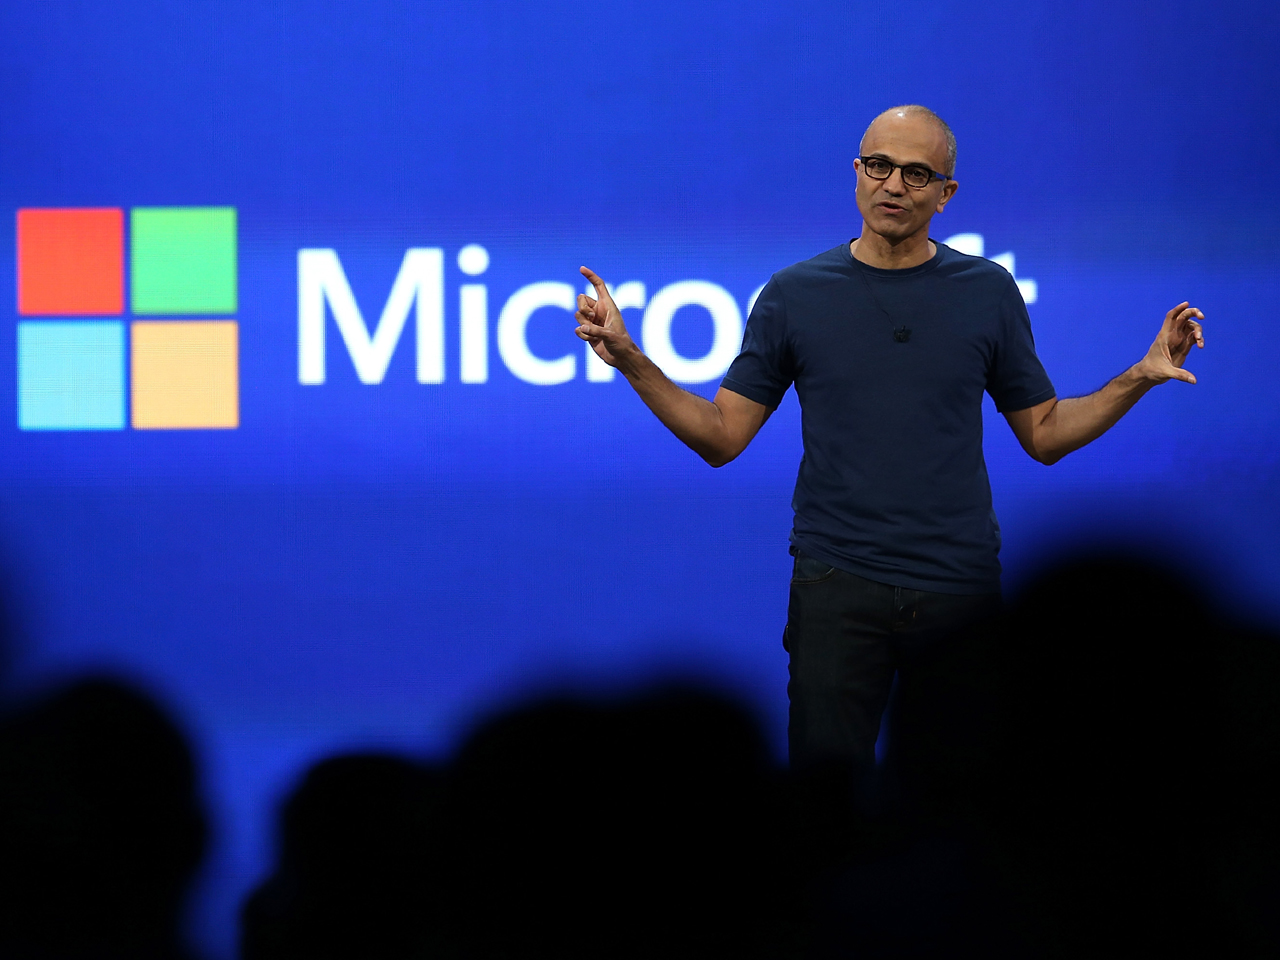 Microsoft to lay off 18,000 - CBS News